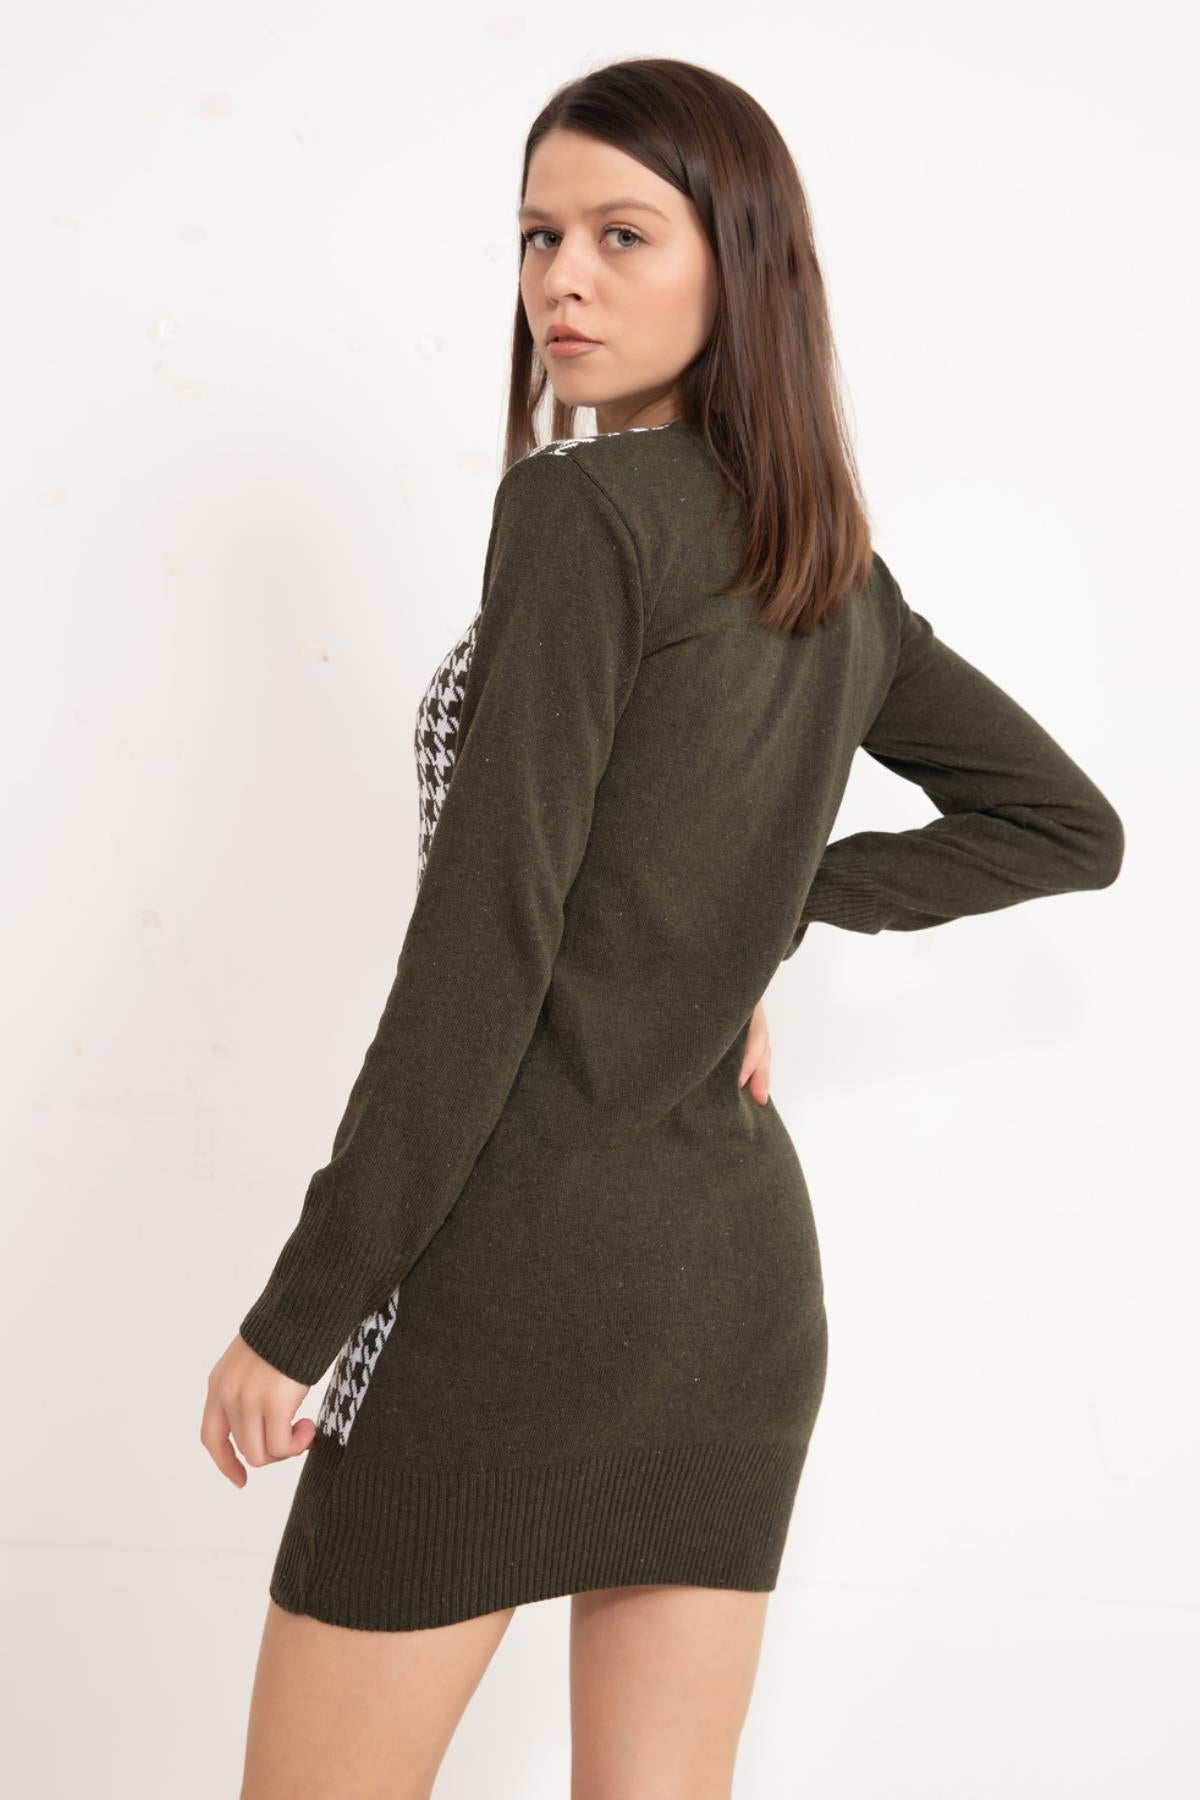 Olive Front patterned knitwear tunic